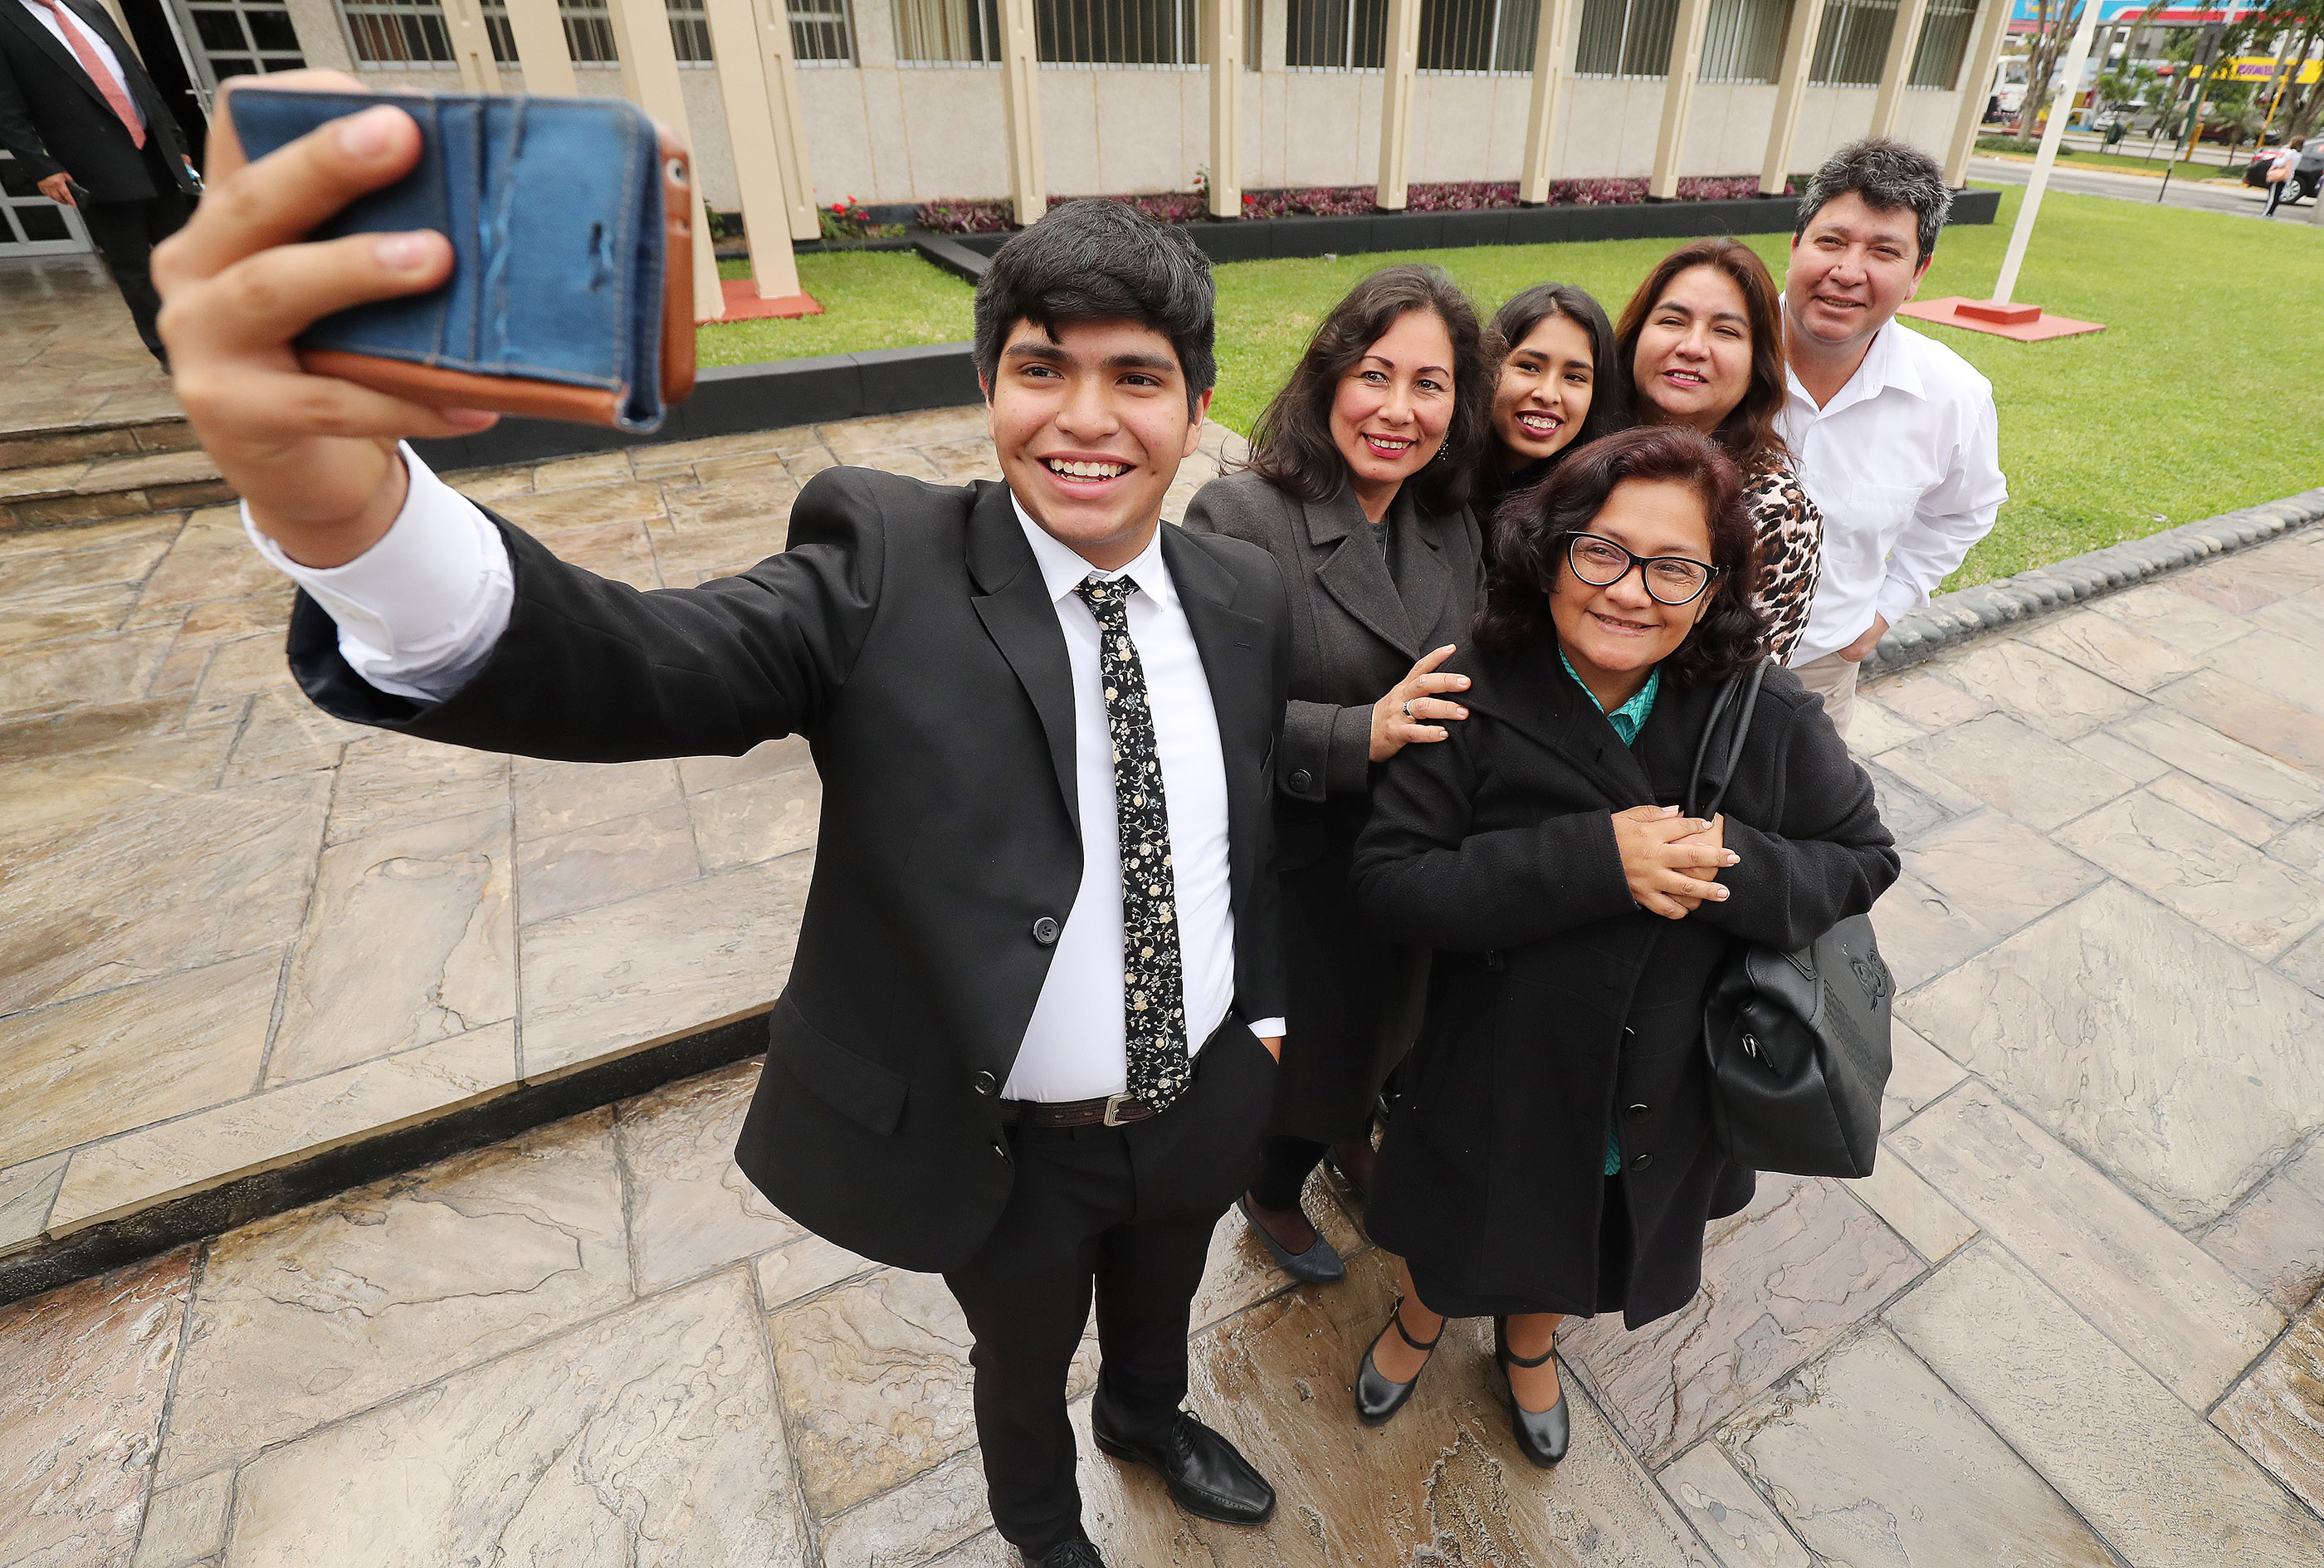 Members of The Church of Jesus Christ of Latter-day Saints shoot a photo after meetings in Lima, Peru, on Oct. 21, 2018.